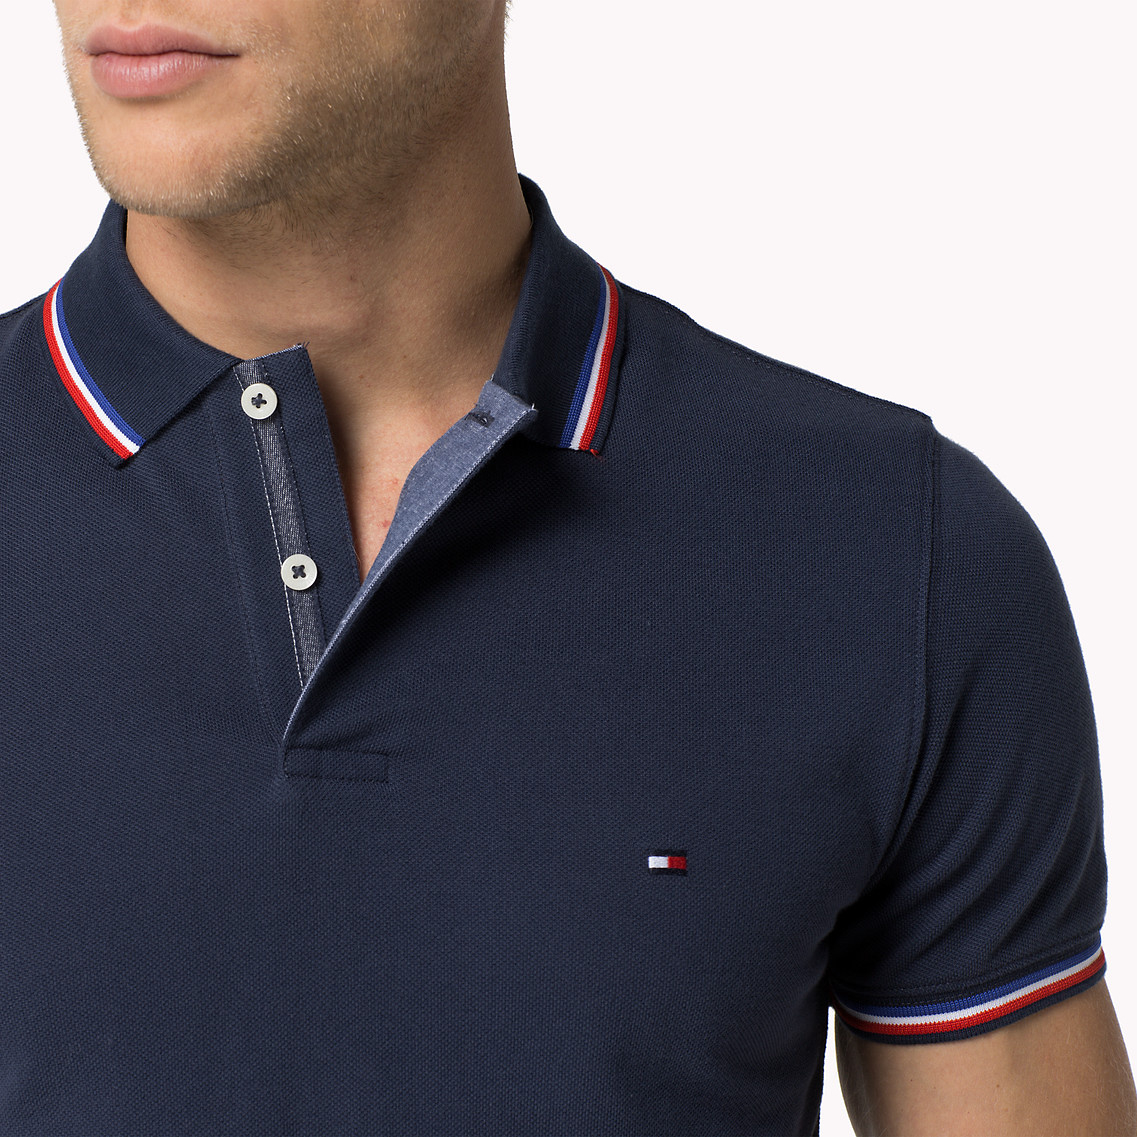 5f3f5e41ca3d0 Tommy Hilfiger Cotton Slim Fit Polo in Blue for Men - Lyst